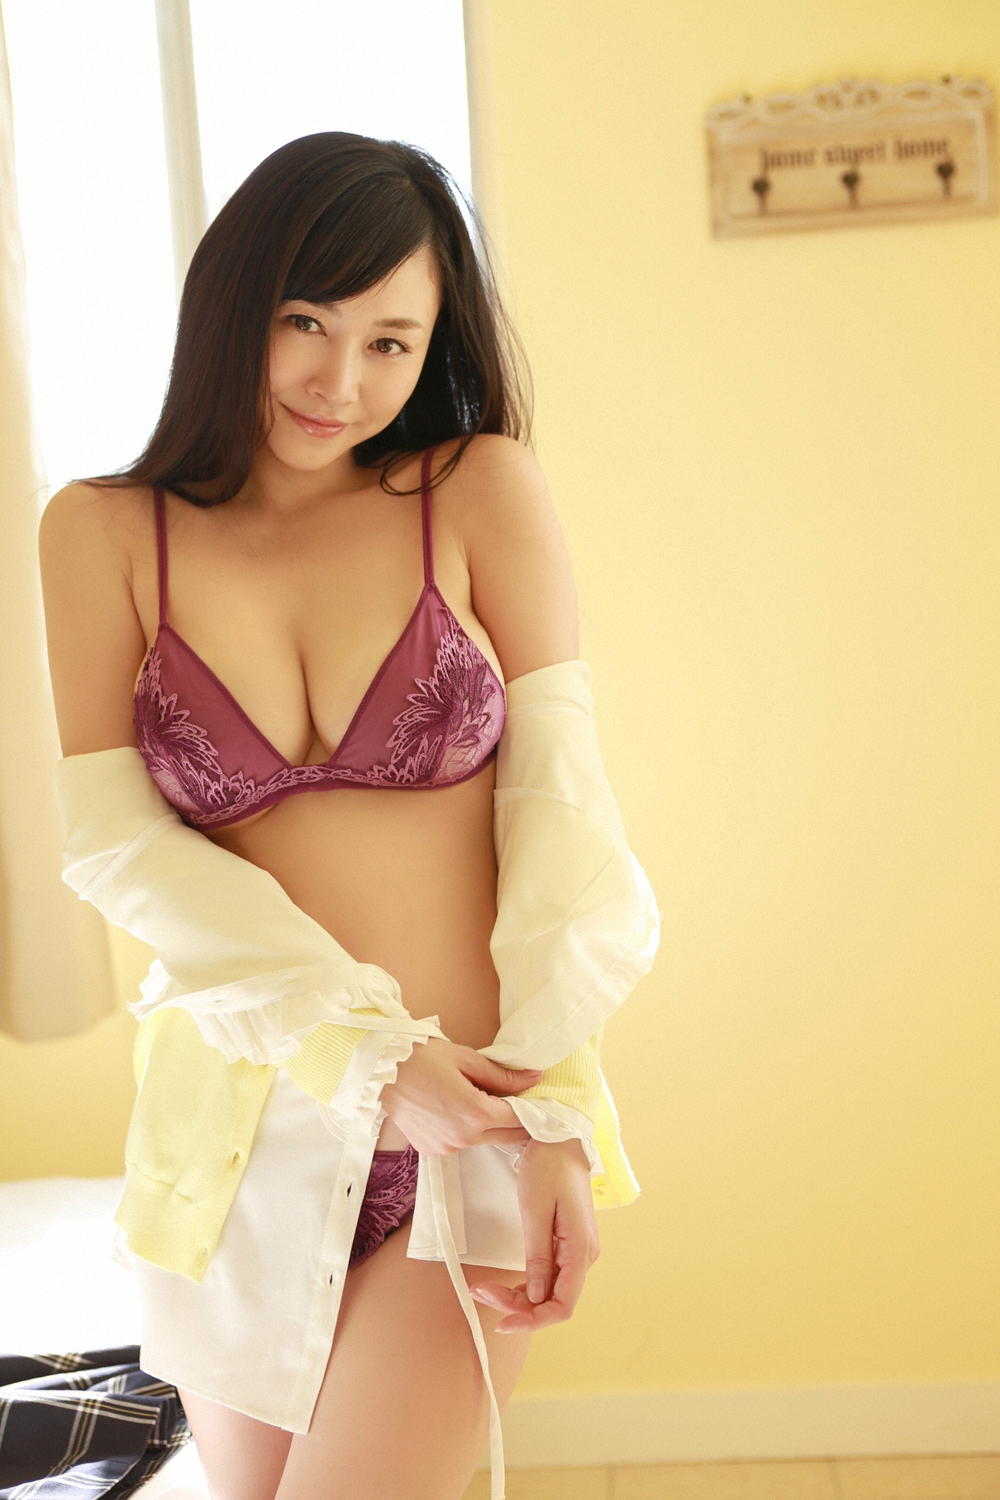 杉原杏璃 Anri Sugihara YS Web Vol 655 Pictures 89